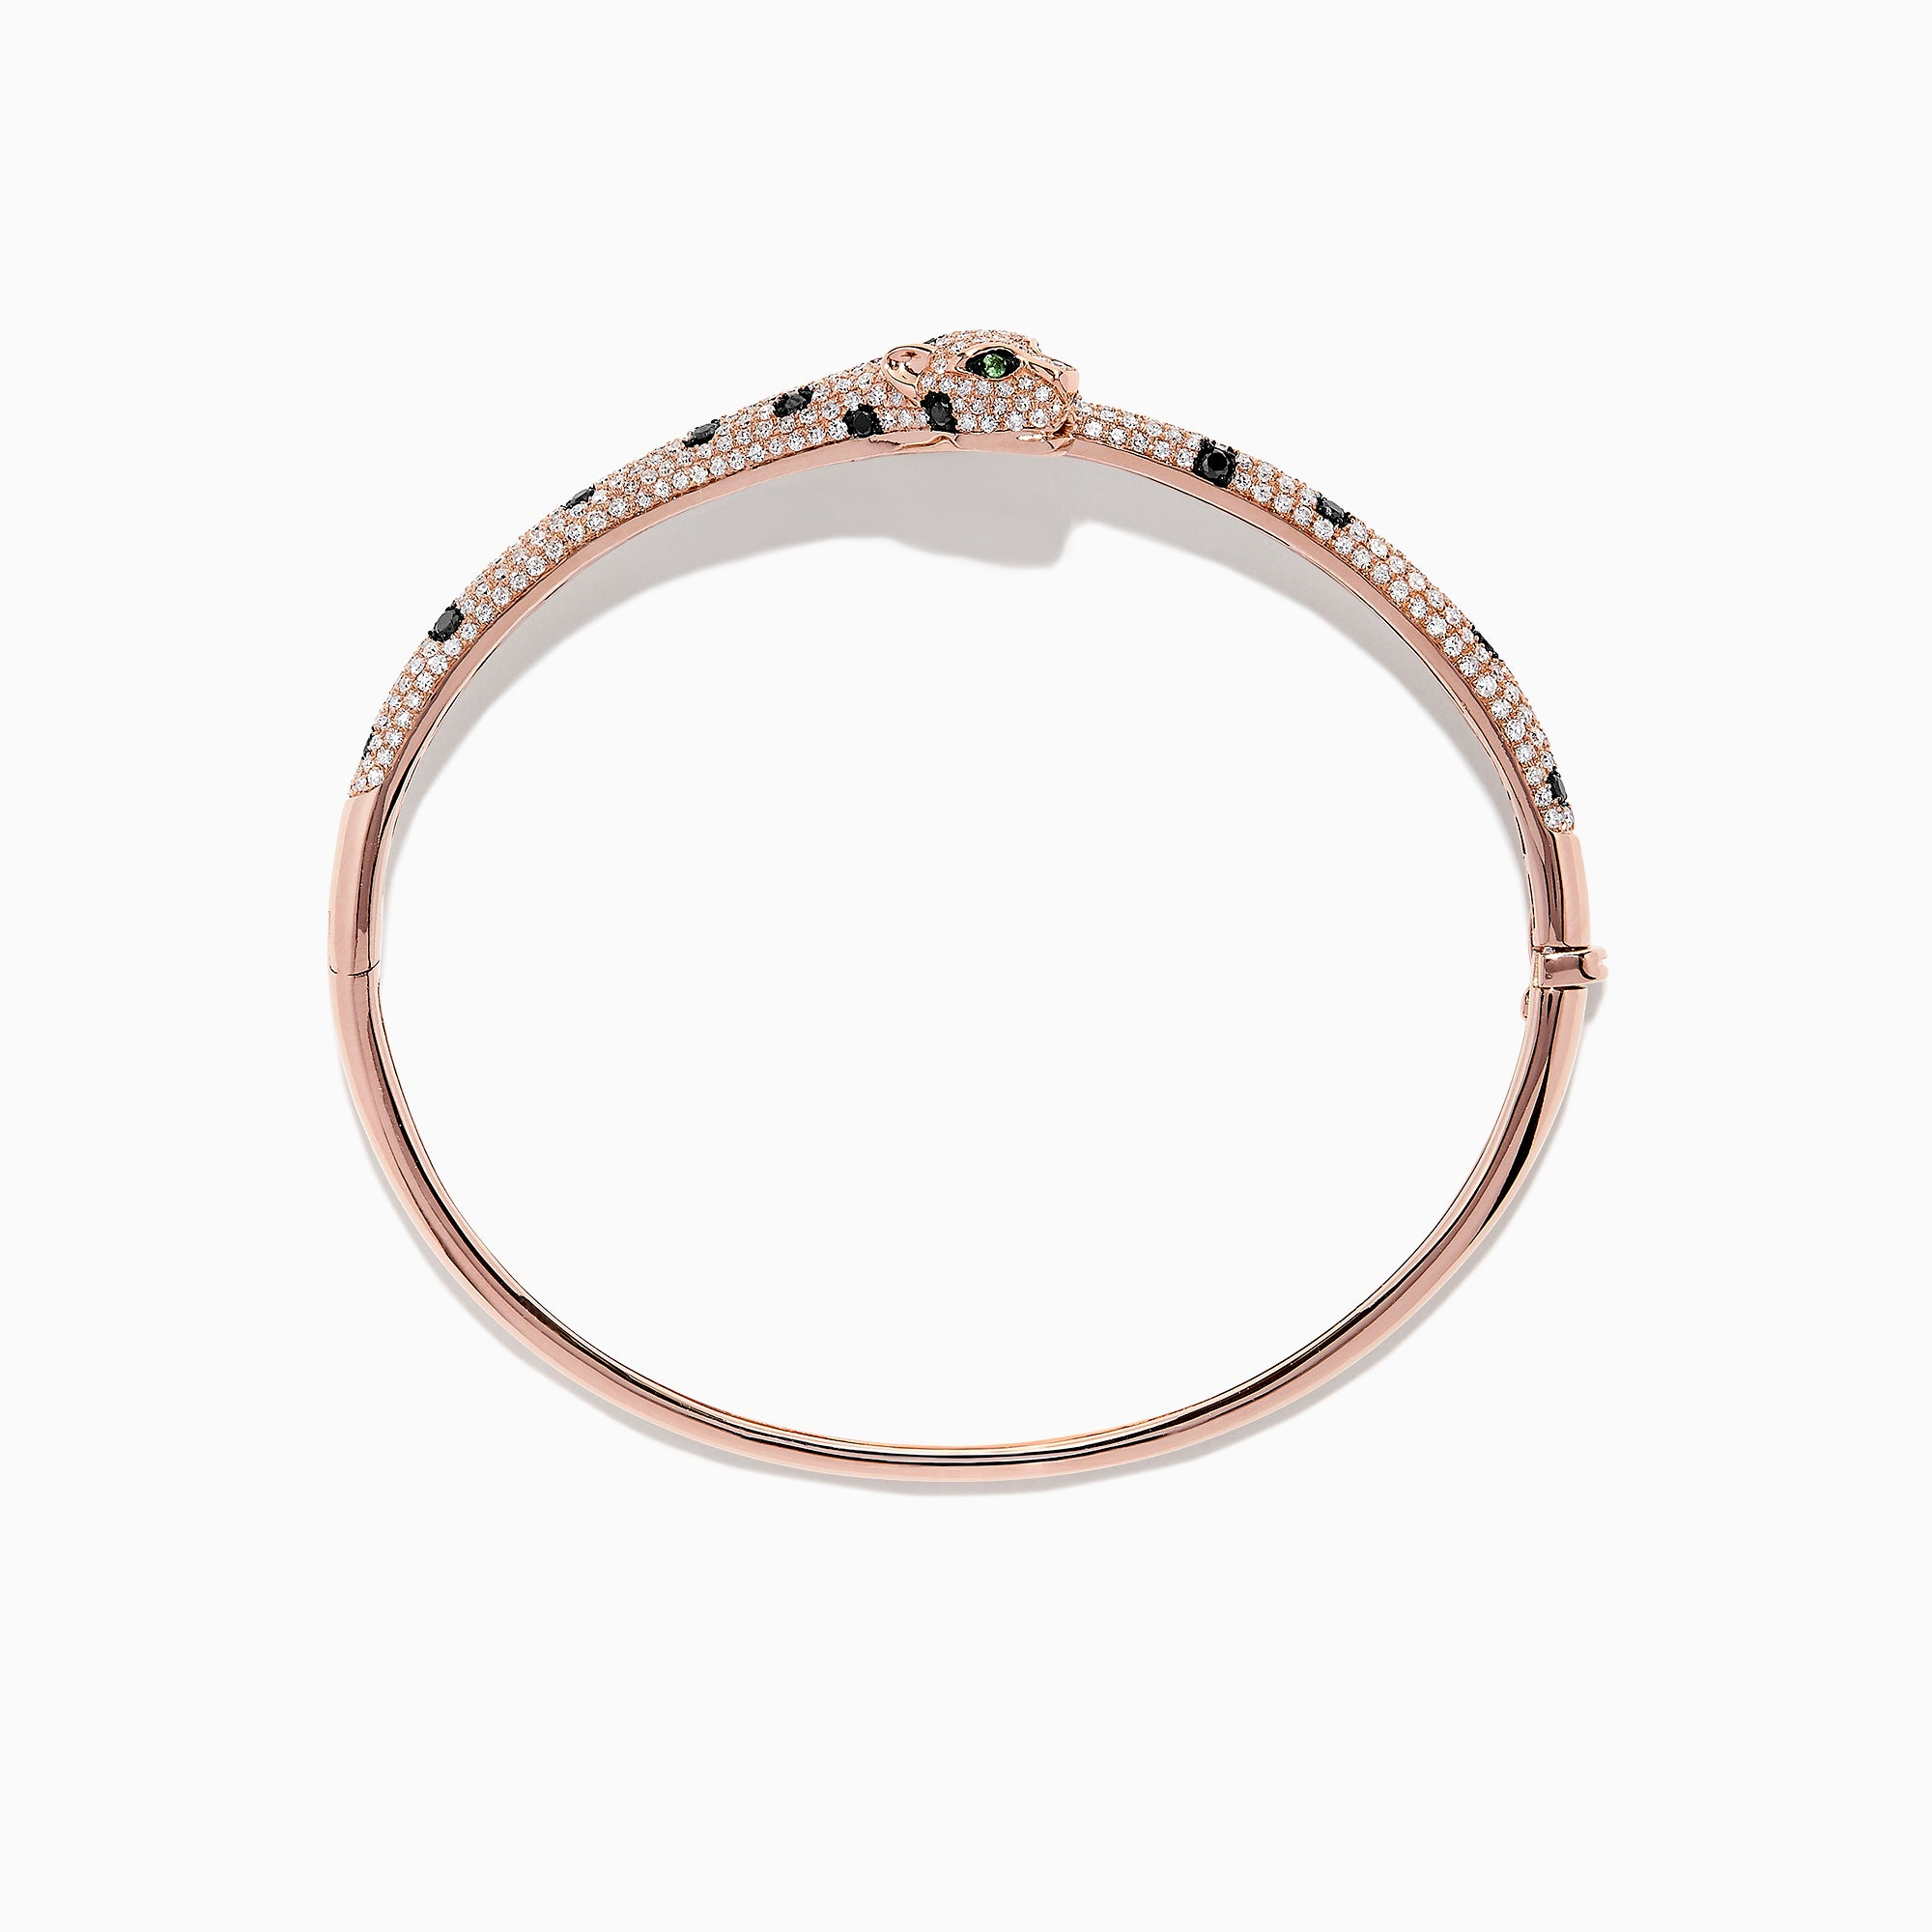 Effy Signature 14K Rose Gold Diamond Panther Bangle. 1.96 TCW